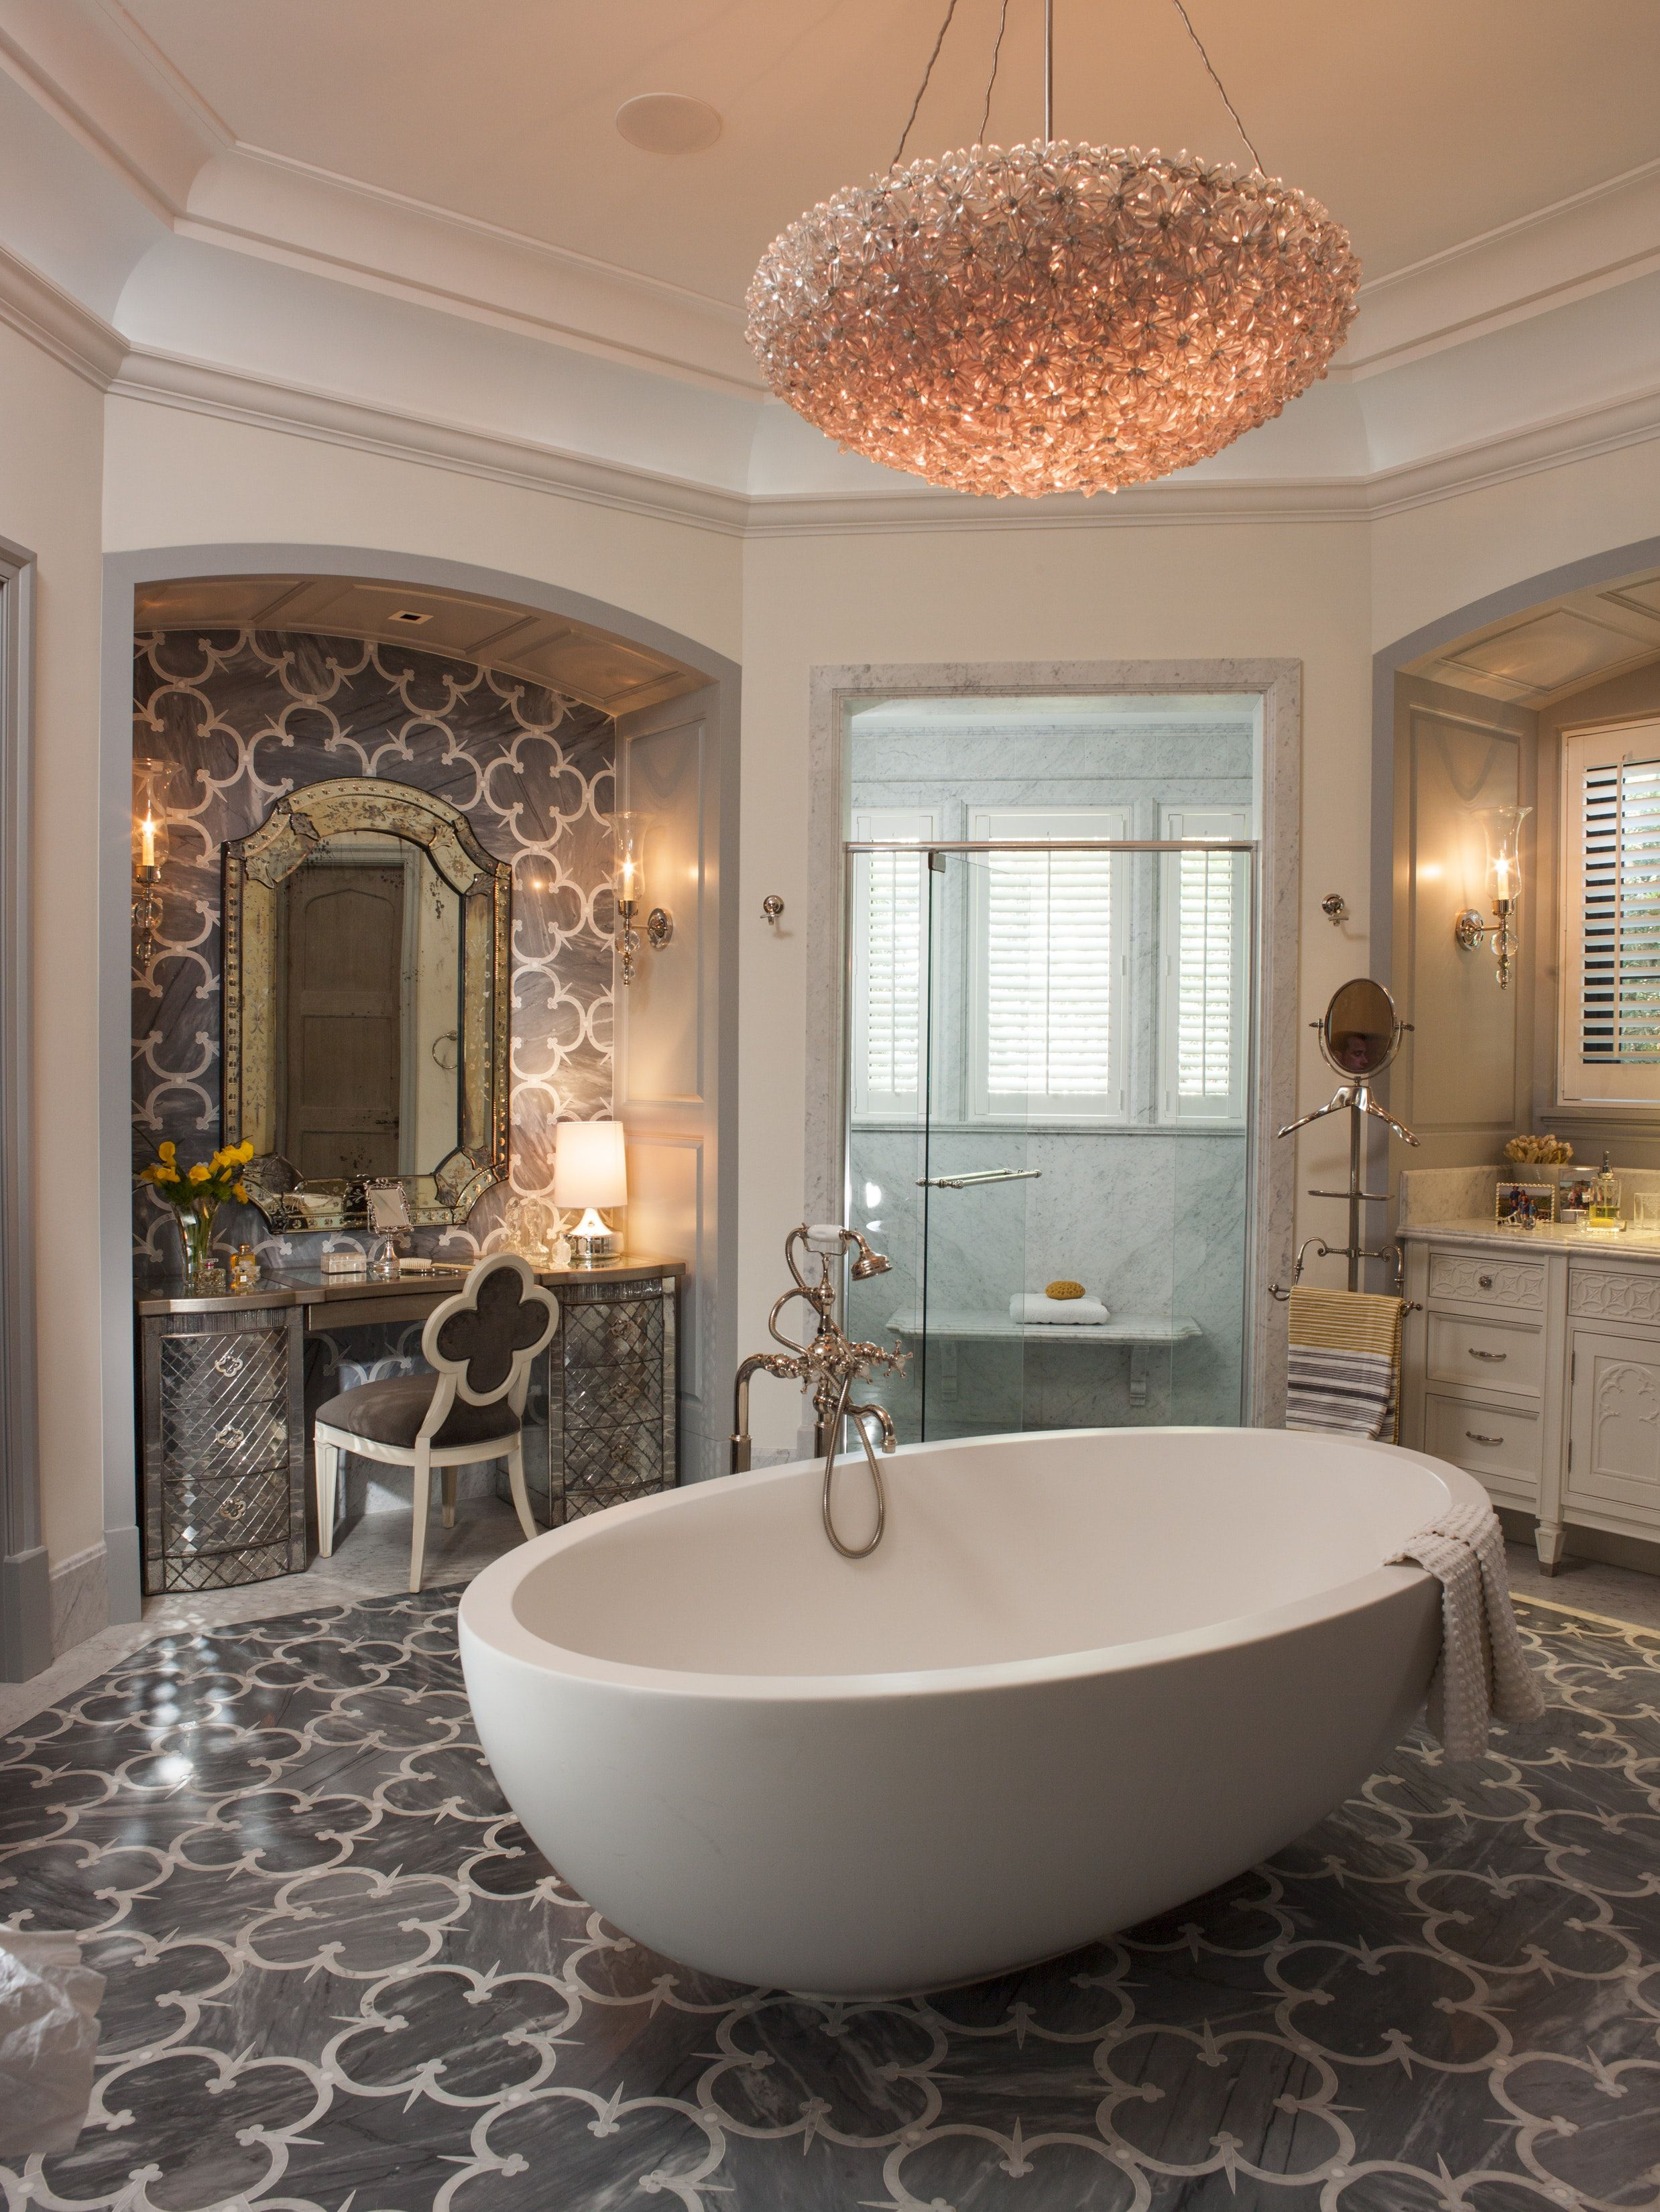 fort lauderdale residence bathroom interior design on best bathroom renovation ideas get your dream bathroom id=84806